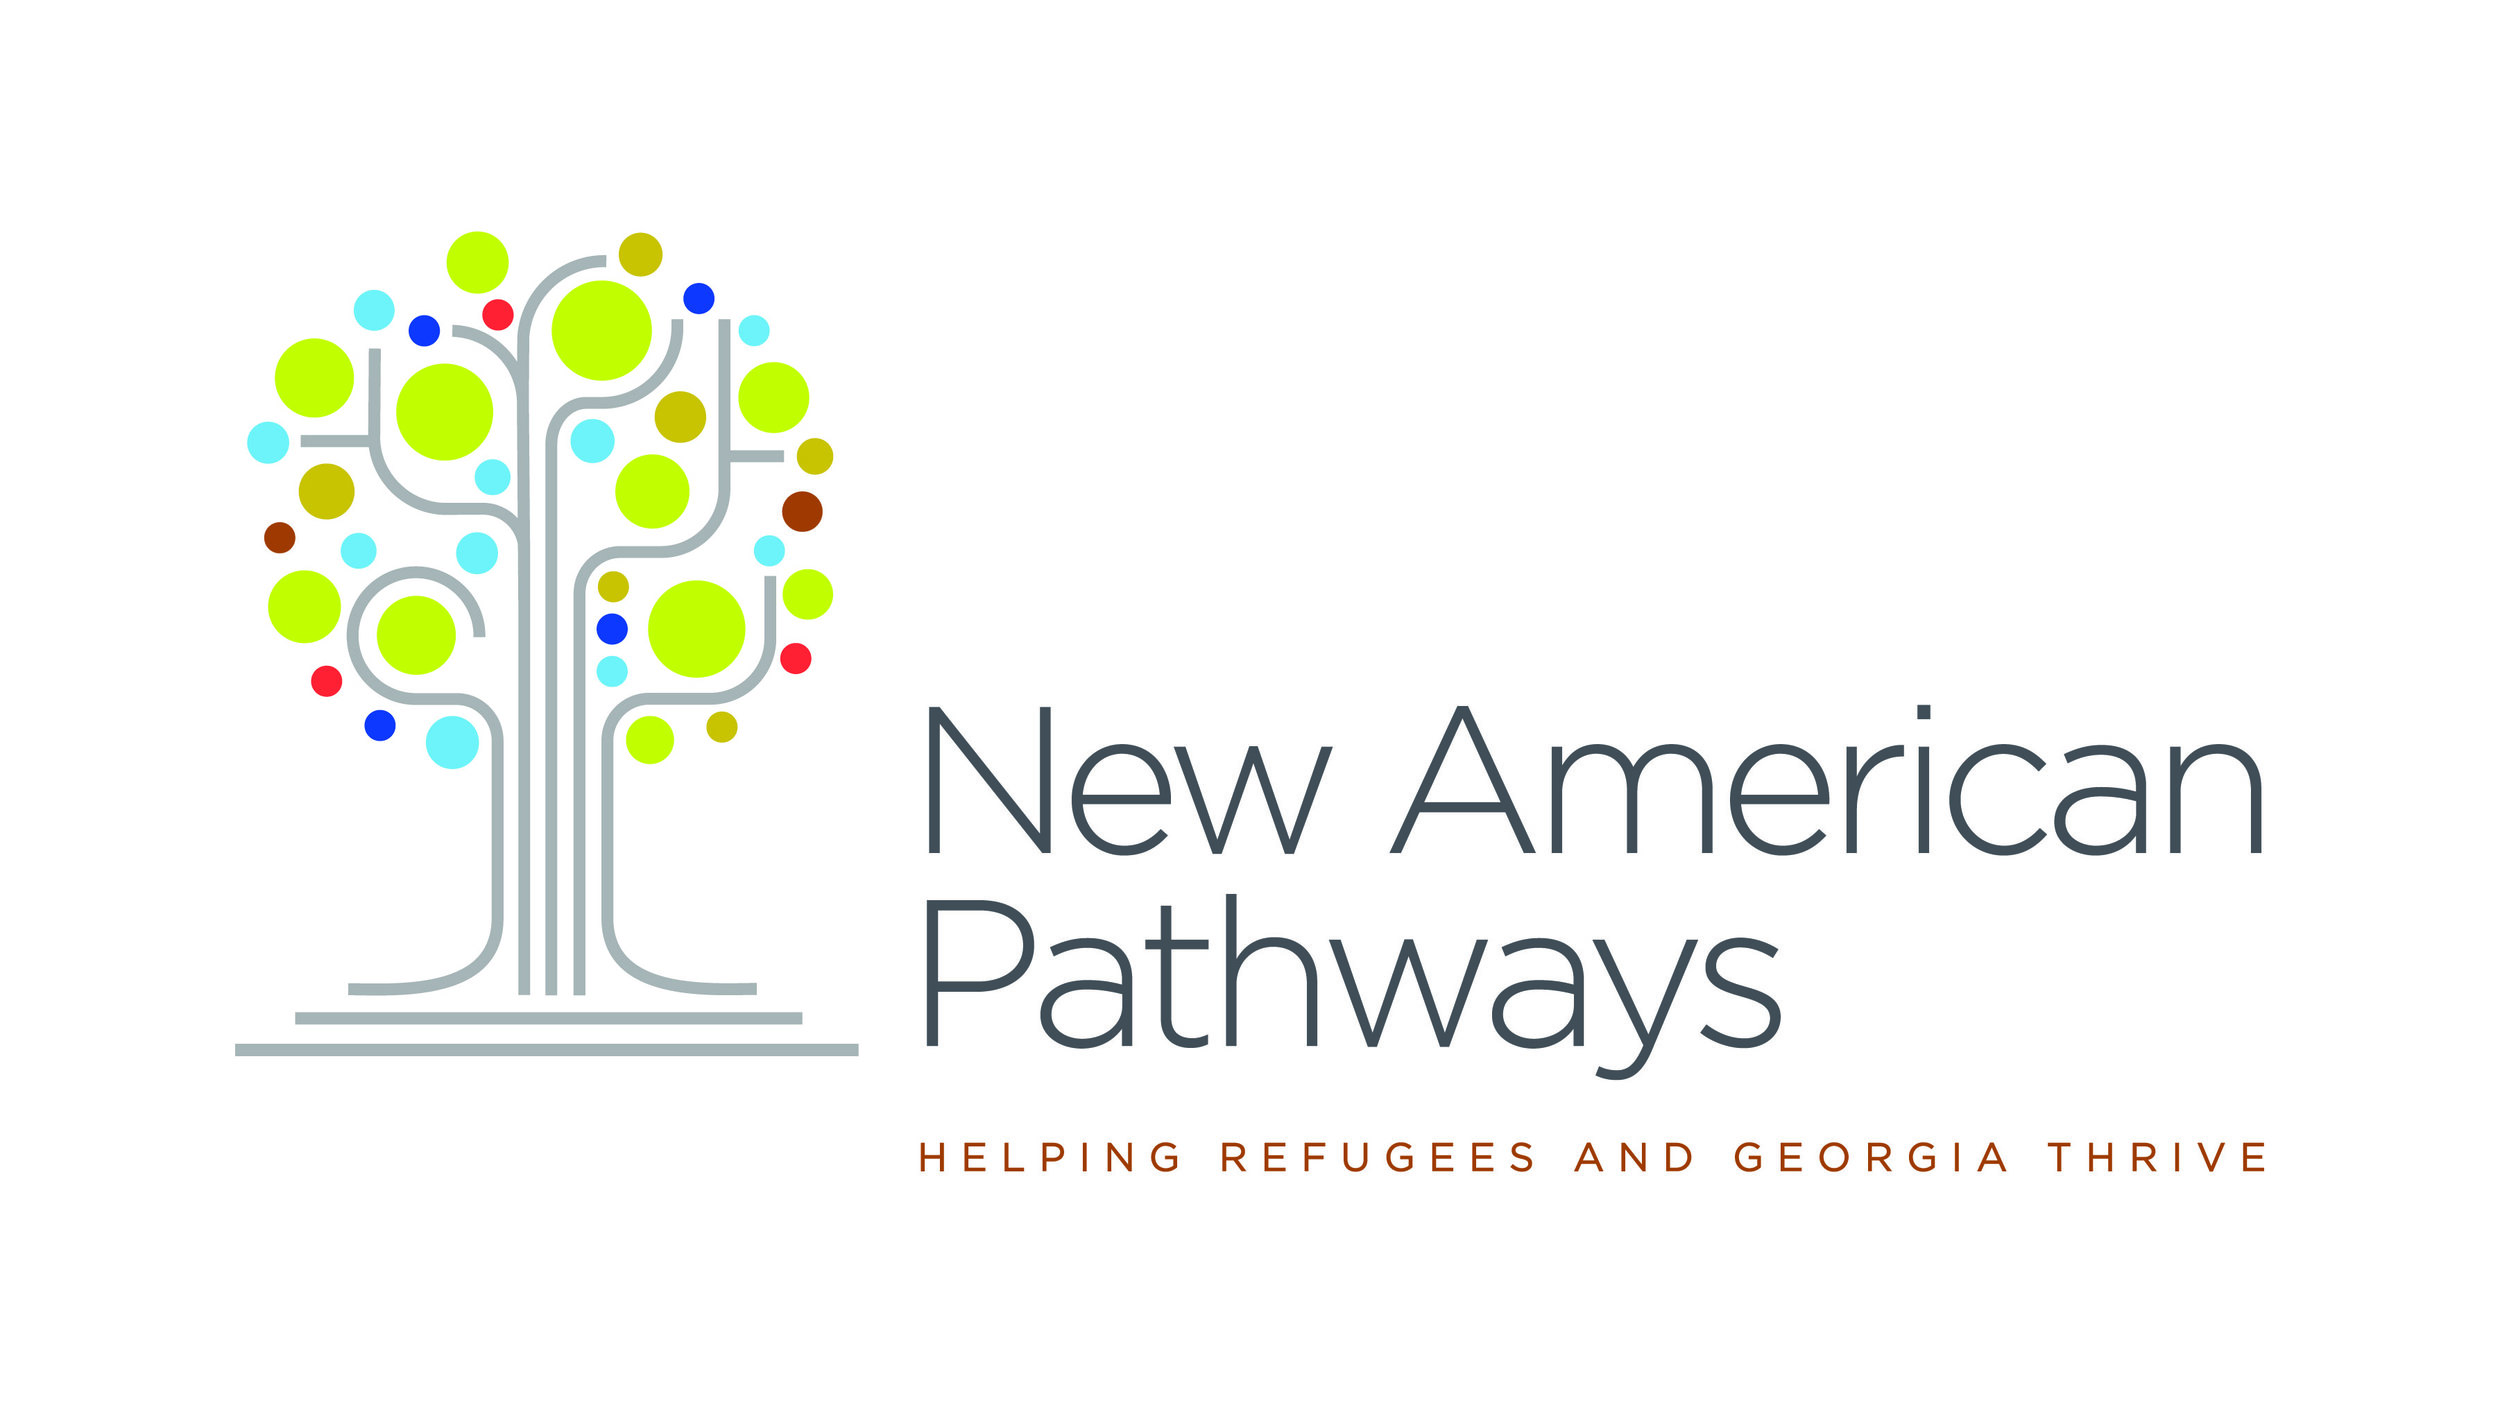 - Helping Refugees and Georgia thrive.newamericanpathways.org